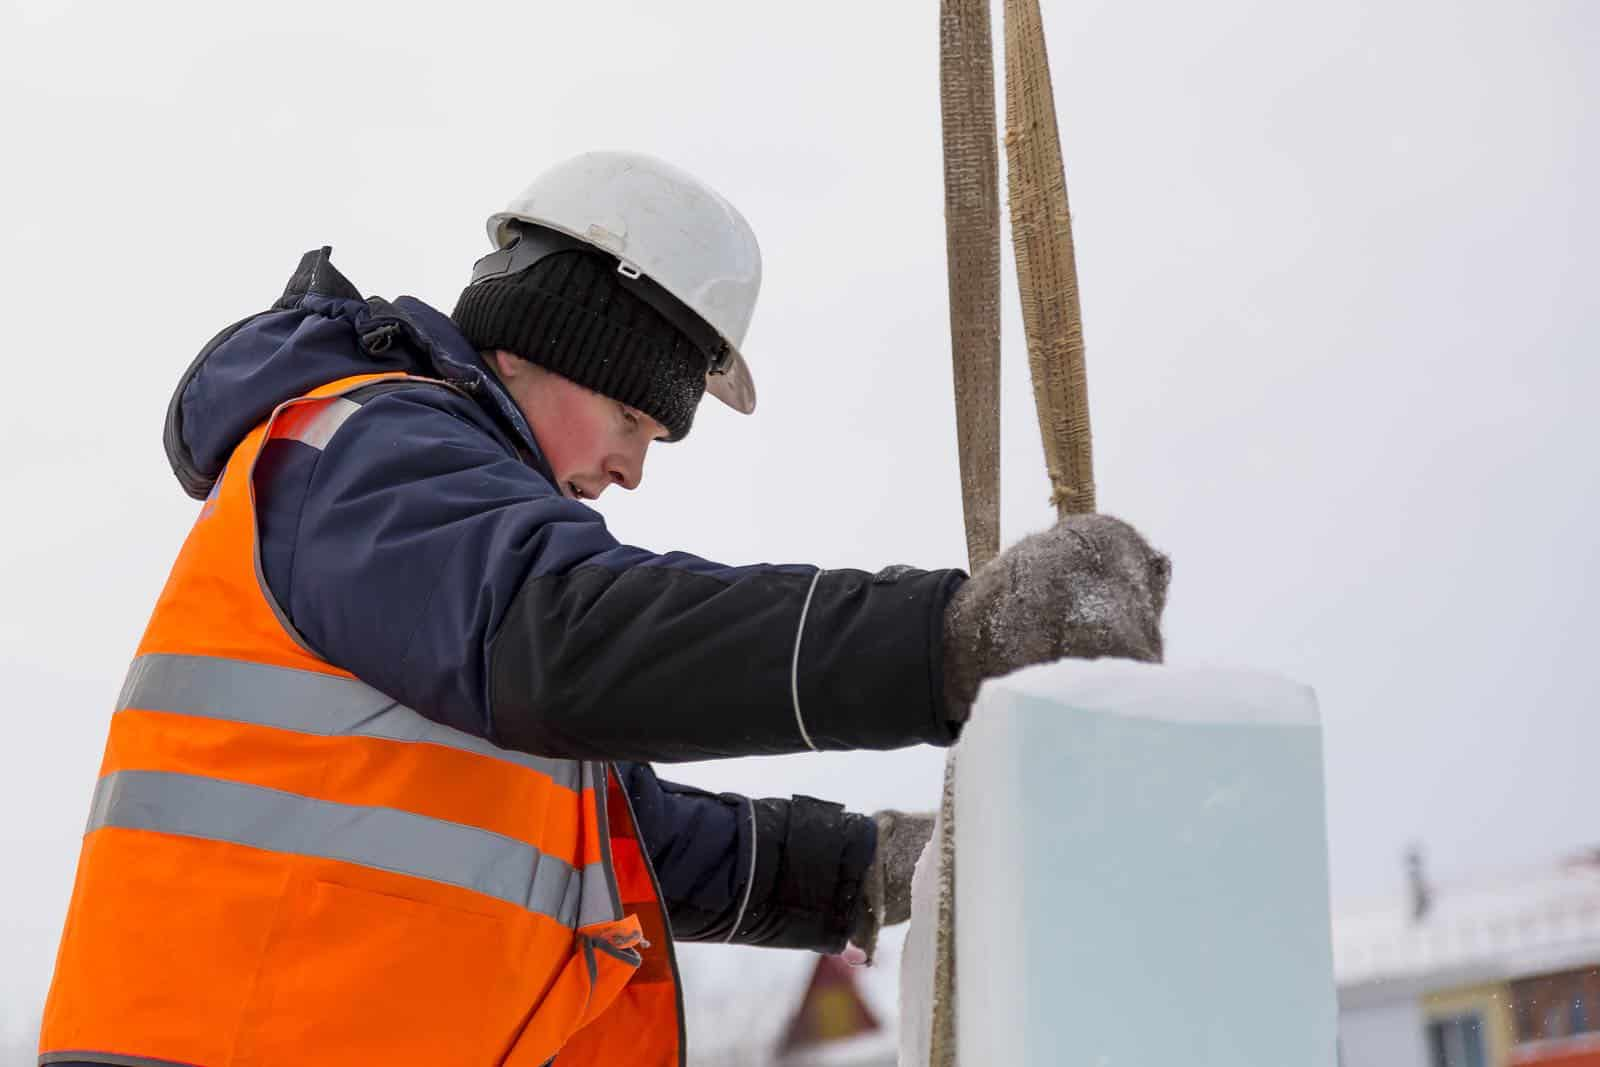 Best Winter Jackets for Men - Coats for Construction Workers